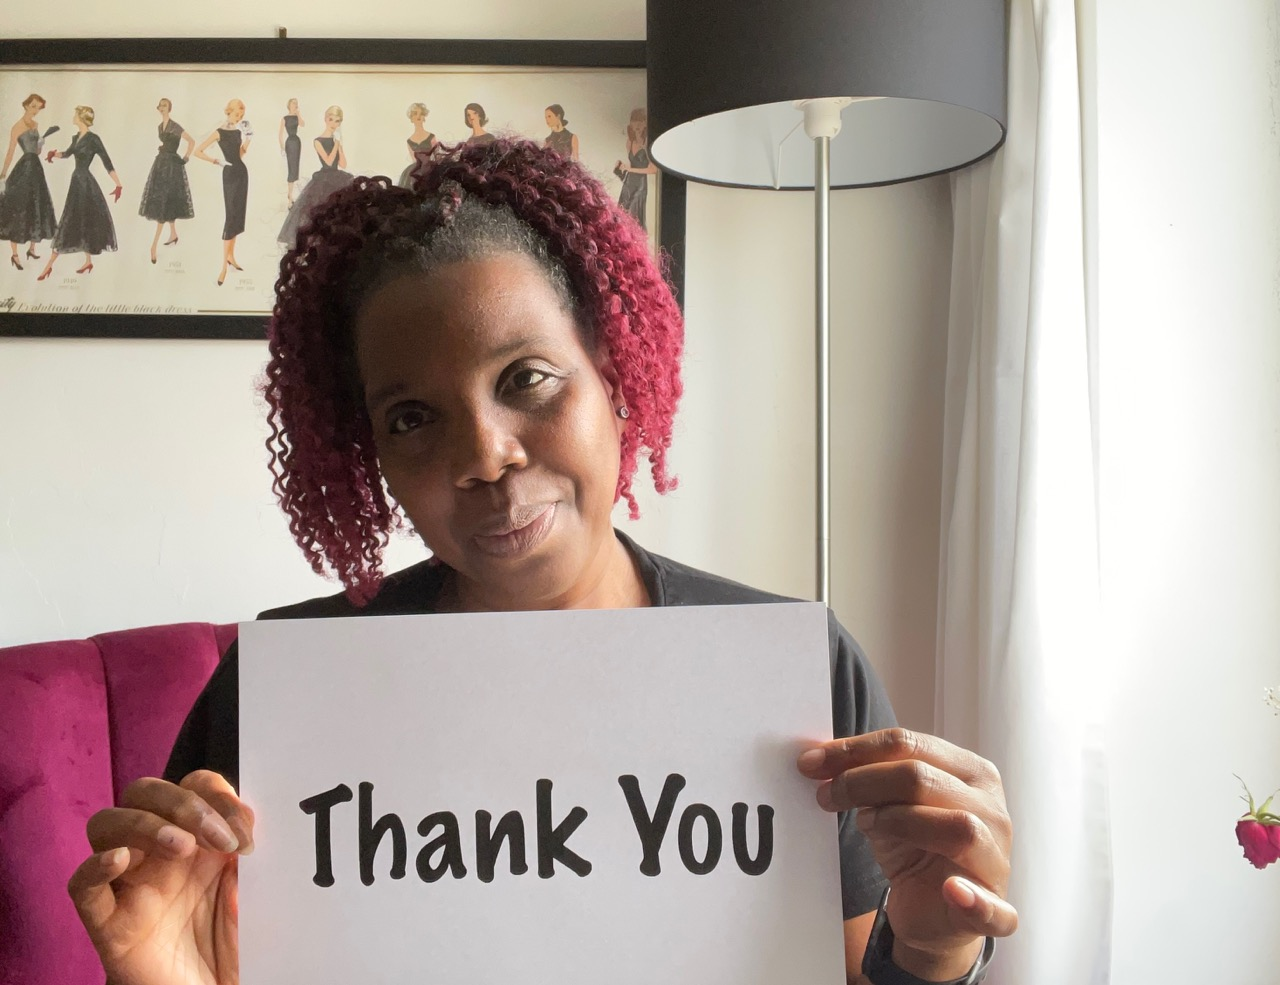 Claire With A Thank You Sign